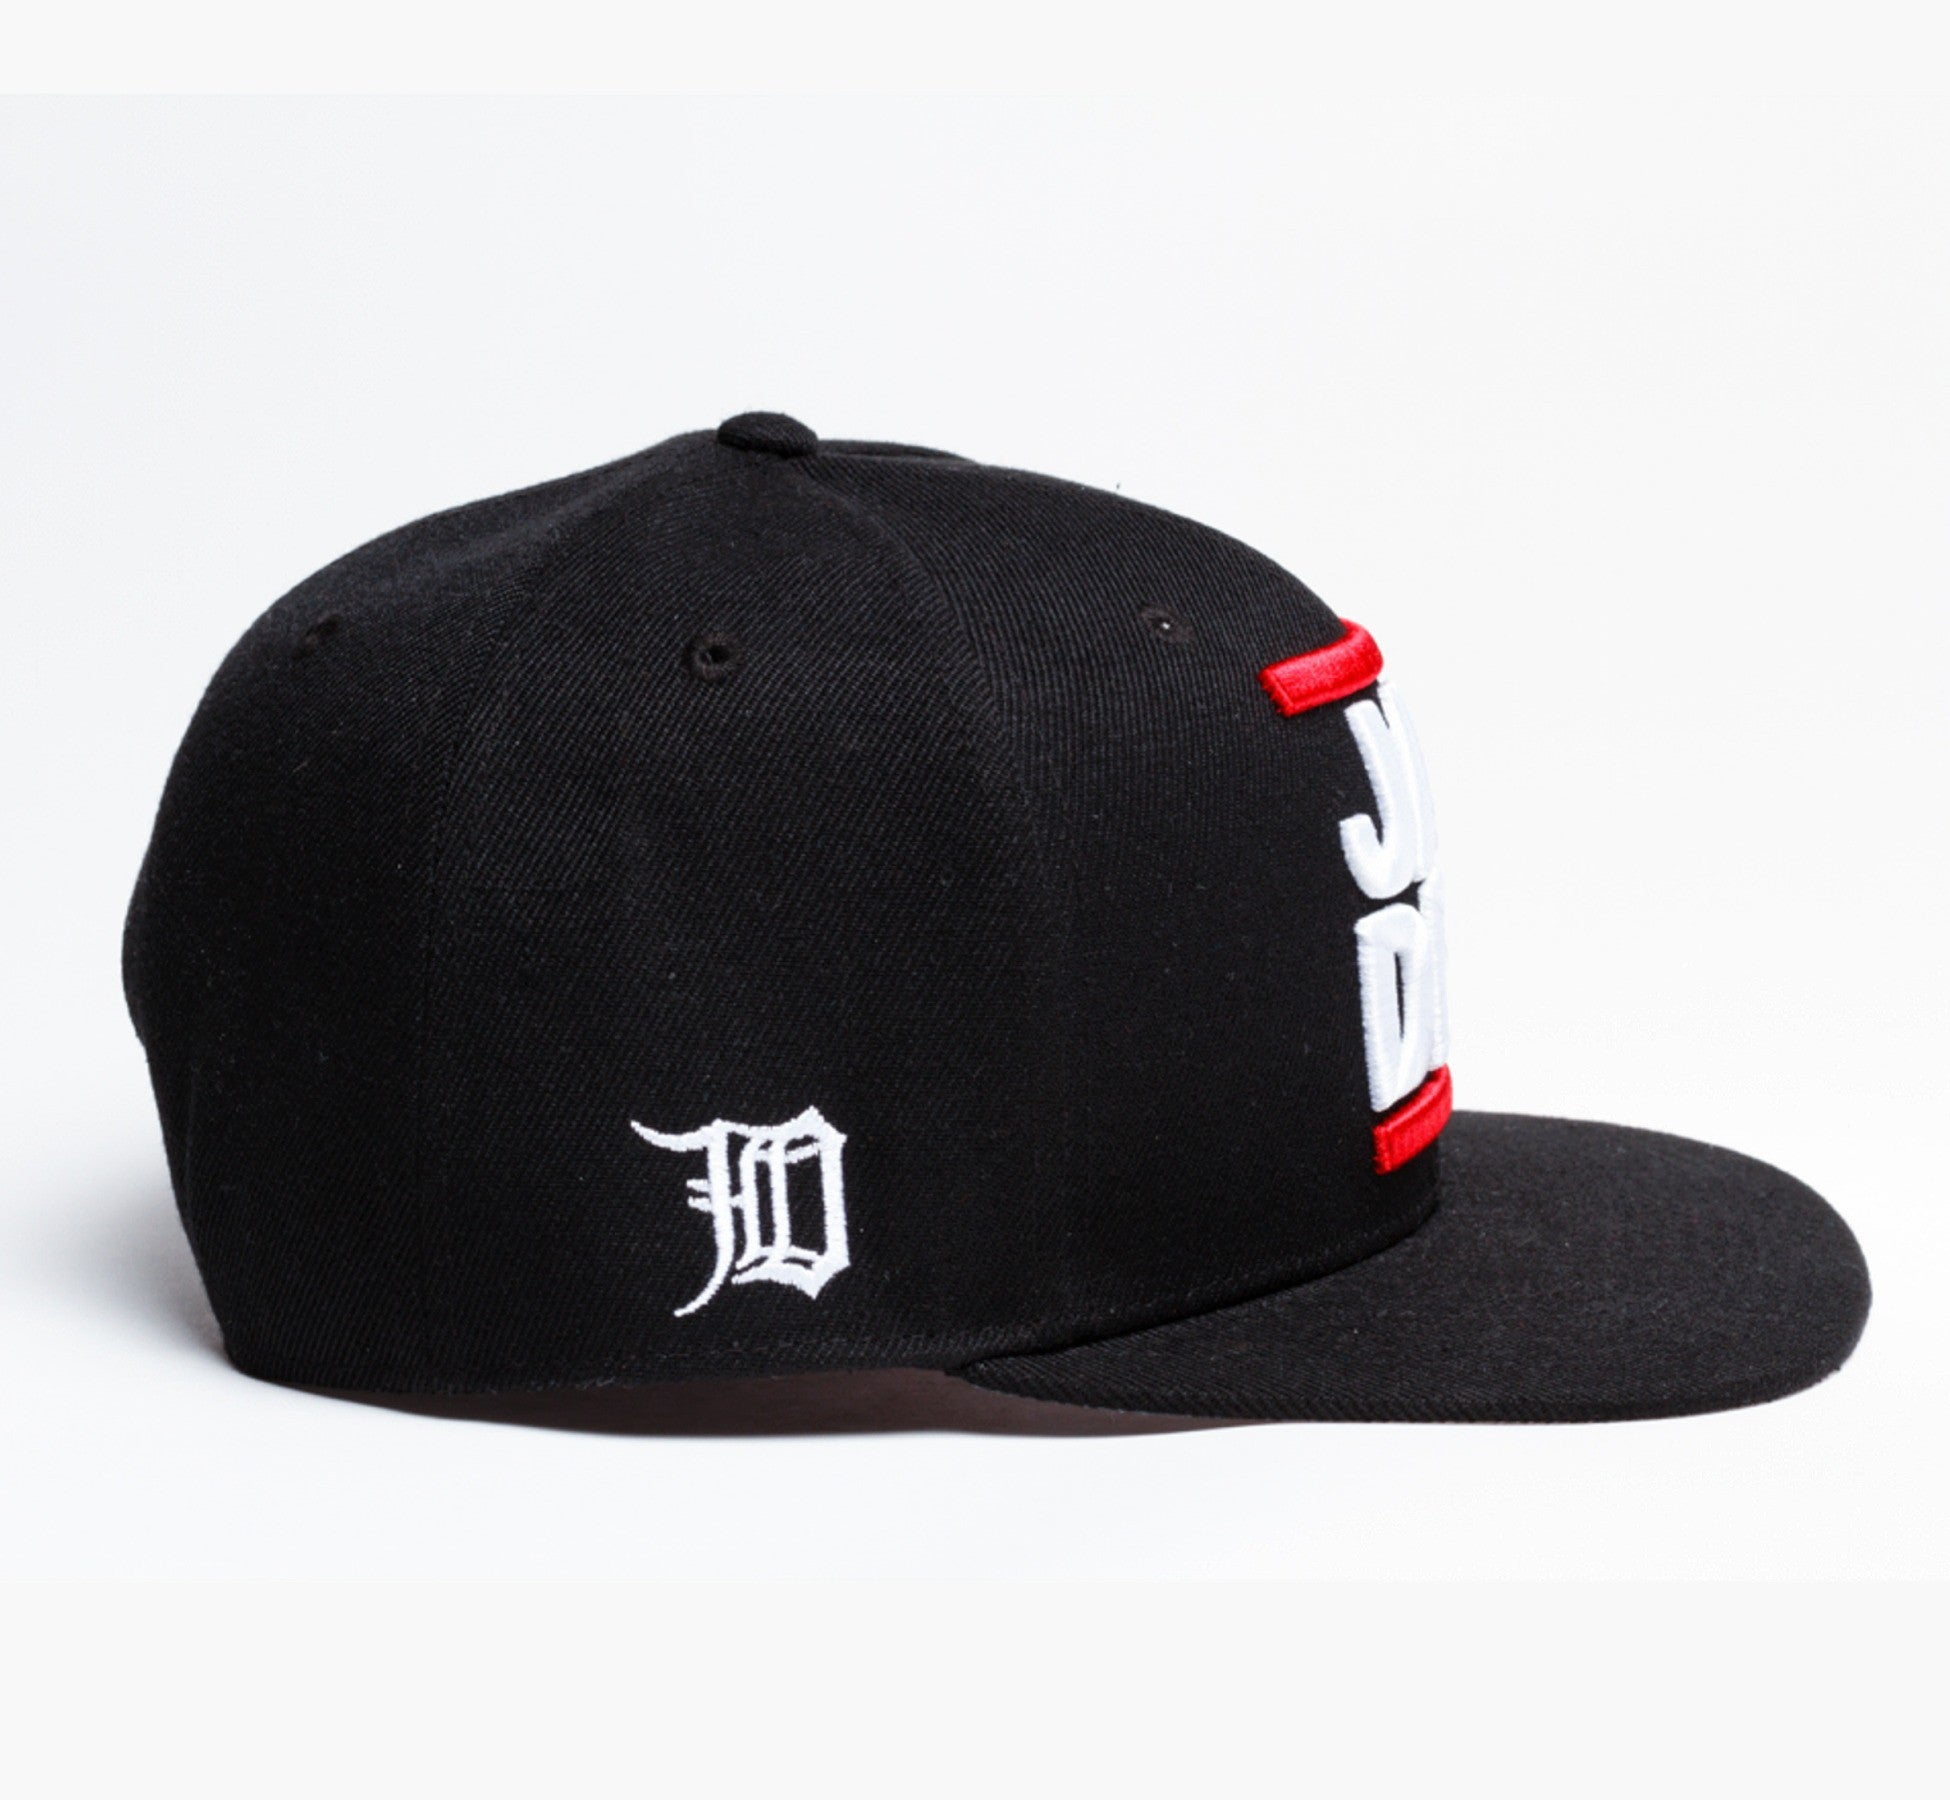 J Dilla - Jay Dee Snapback, Black - The Giant Peach - 2